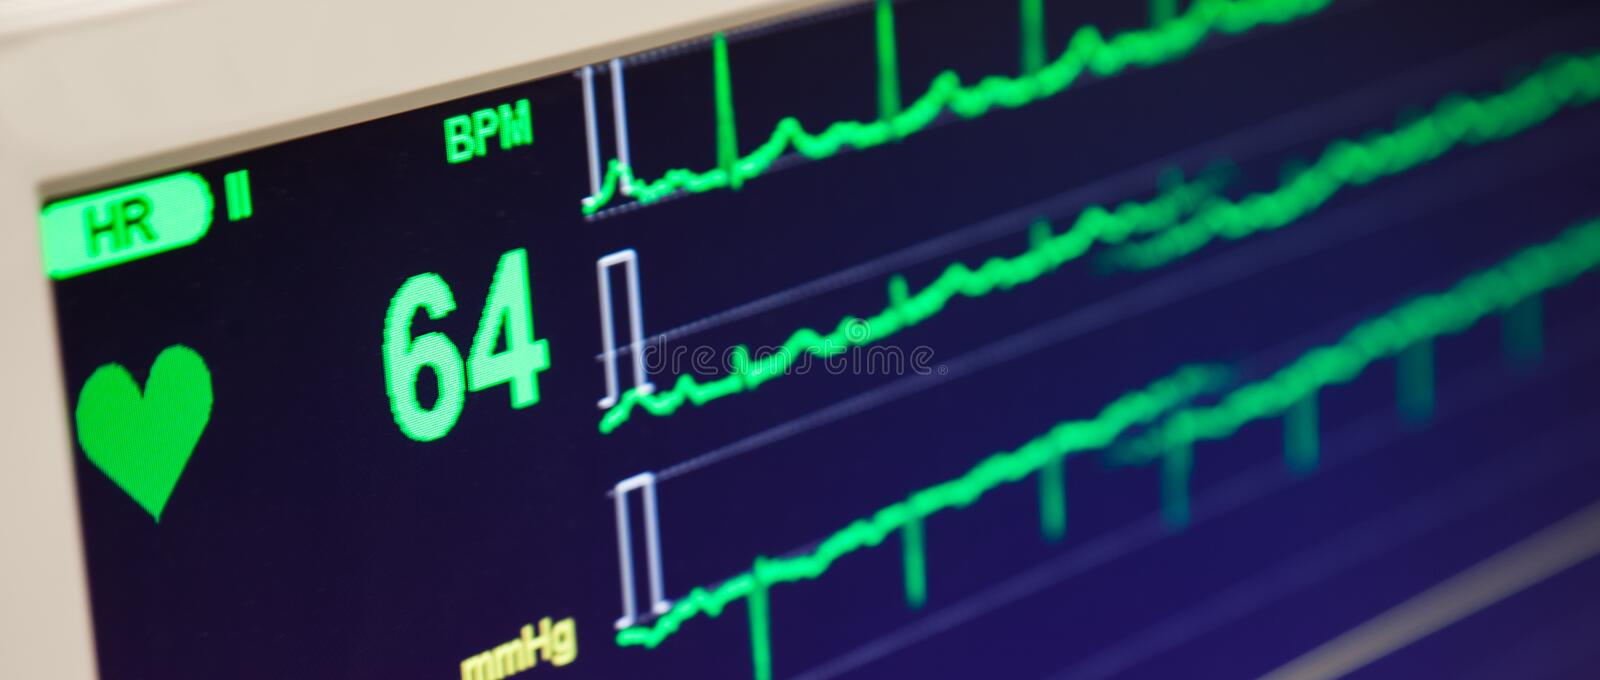 Heart Beat Rate Monitor. A heart beat rate electrocardiogram is displayed on a monitor stock photos